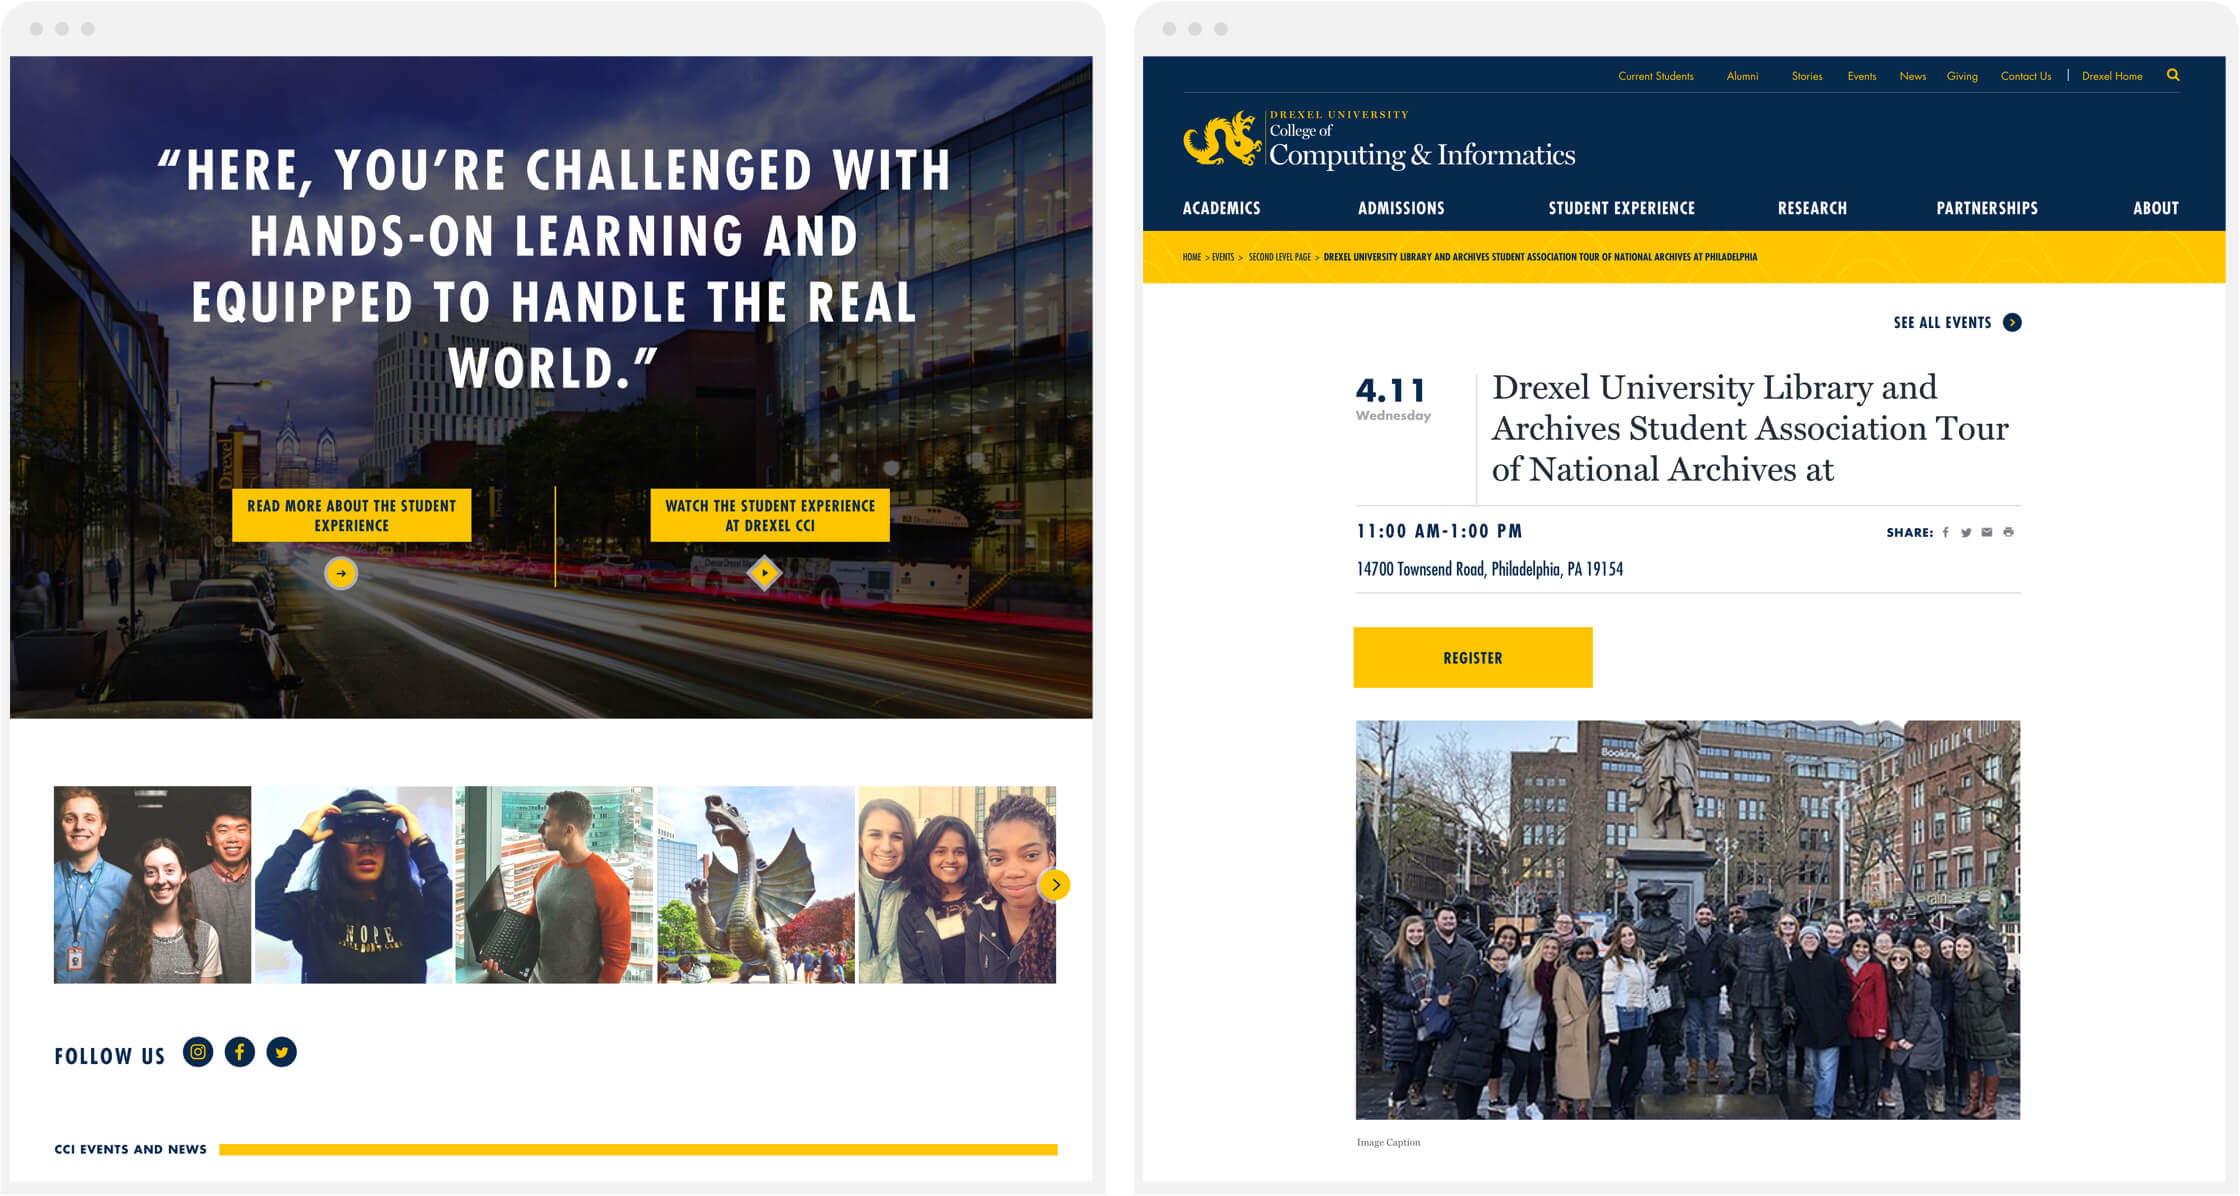 side-by-side sccreenshots of the site with hands-on learning and events page